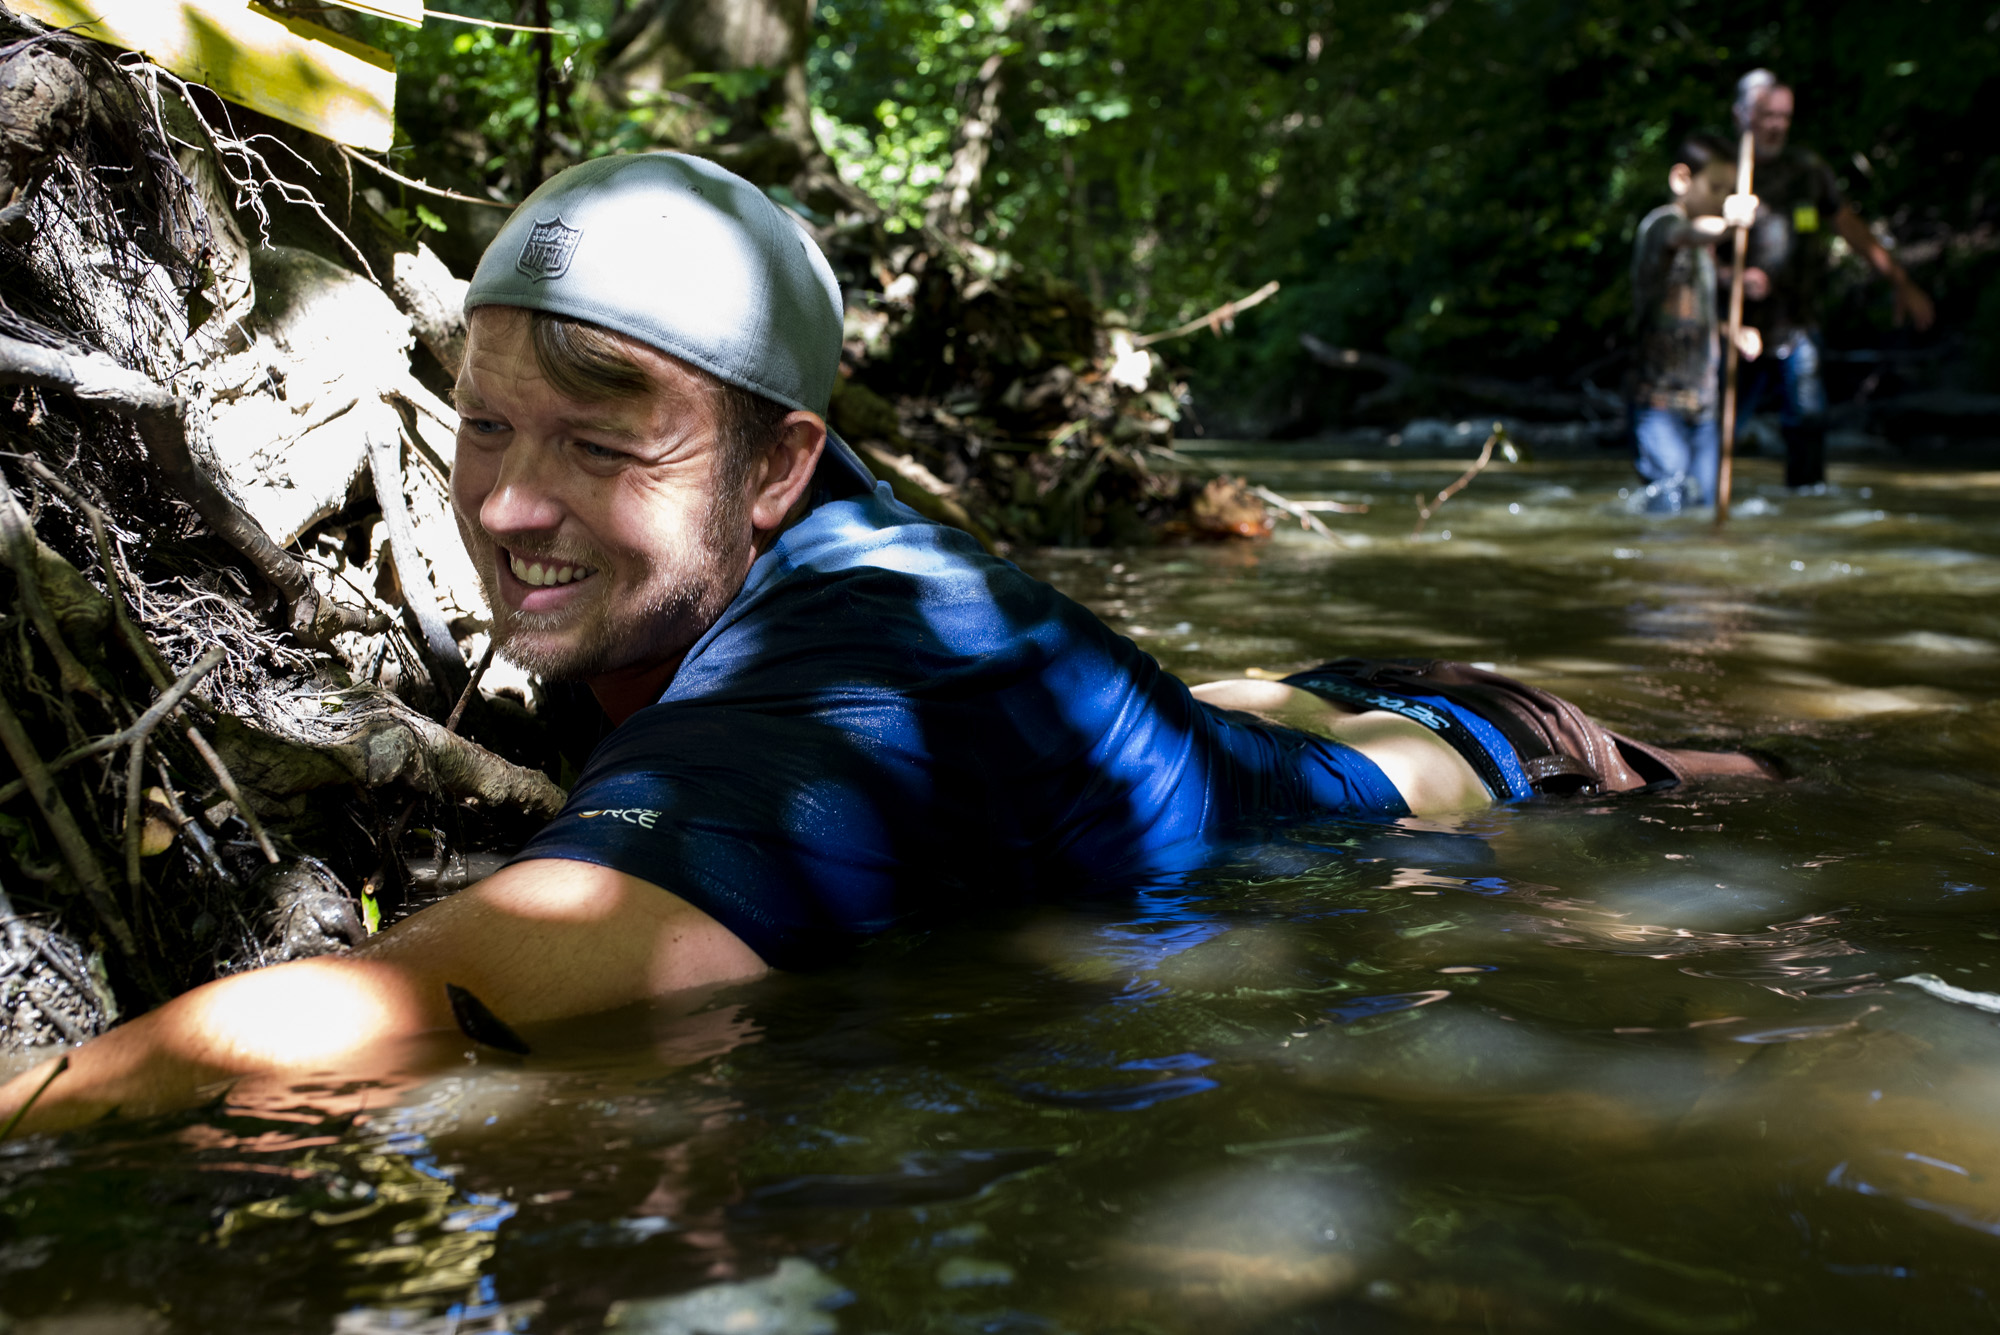 Joey Clemens , of Murrysville, reaches into a hole under tree roots as he hunts for snapping turtles.